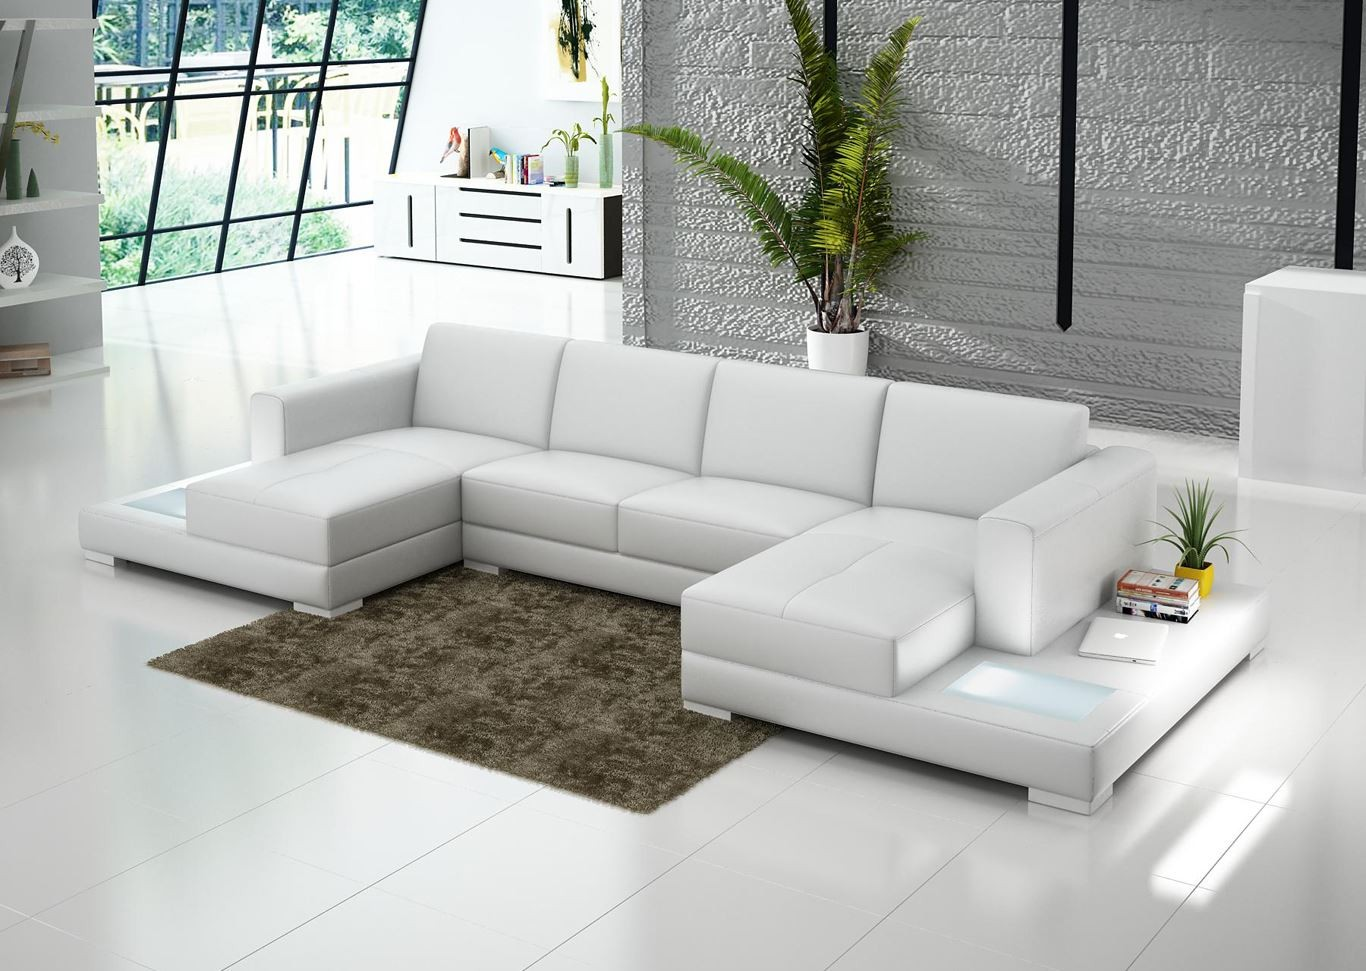 luxurious white double chaise sectional design with brown area rug on white  floor with side stoage